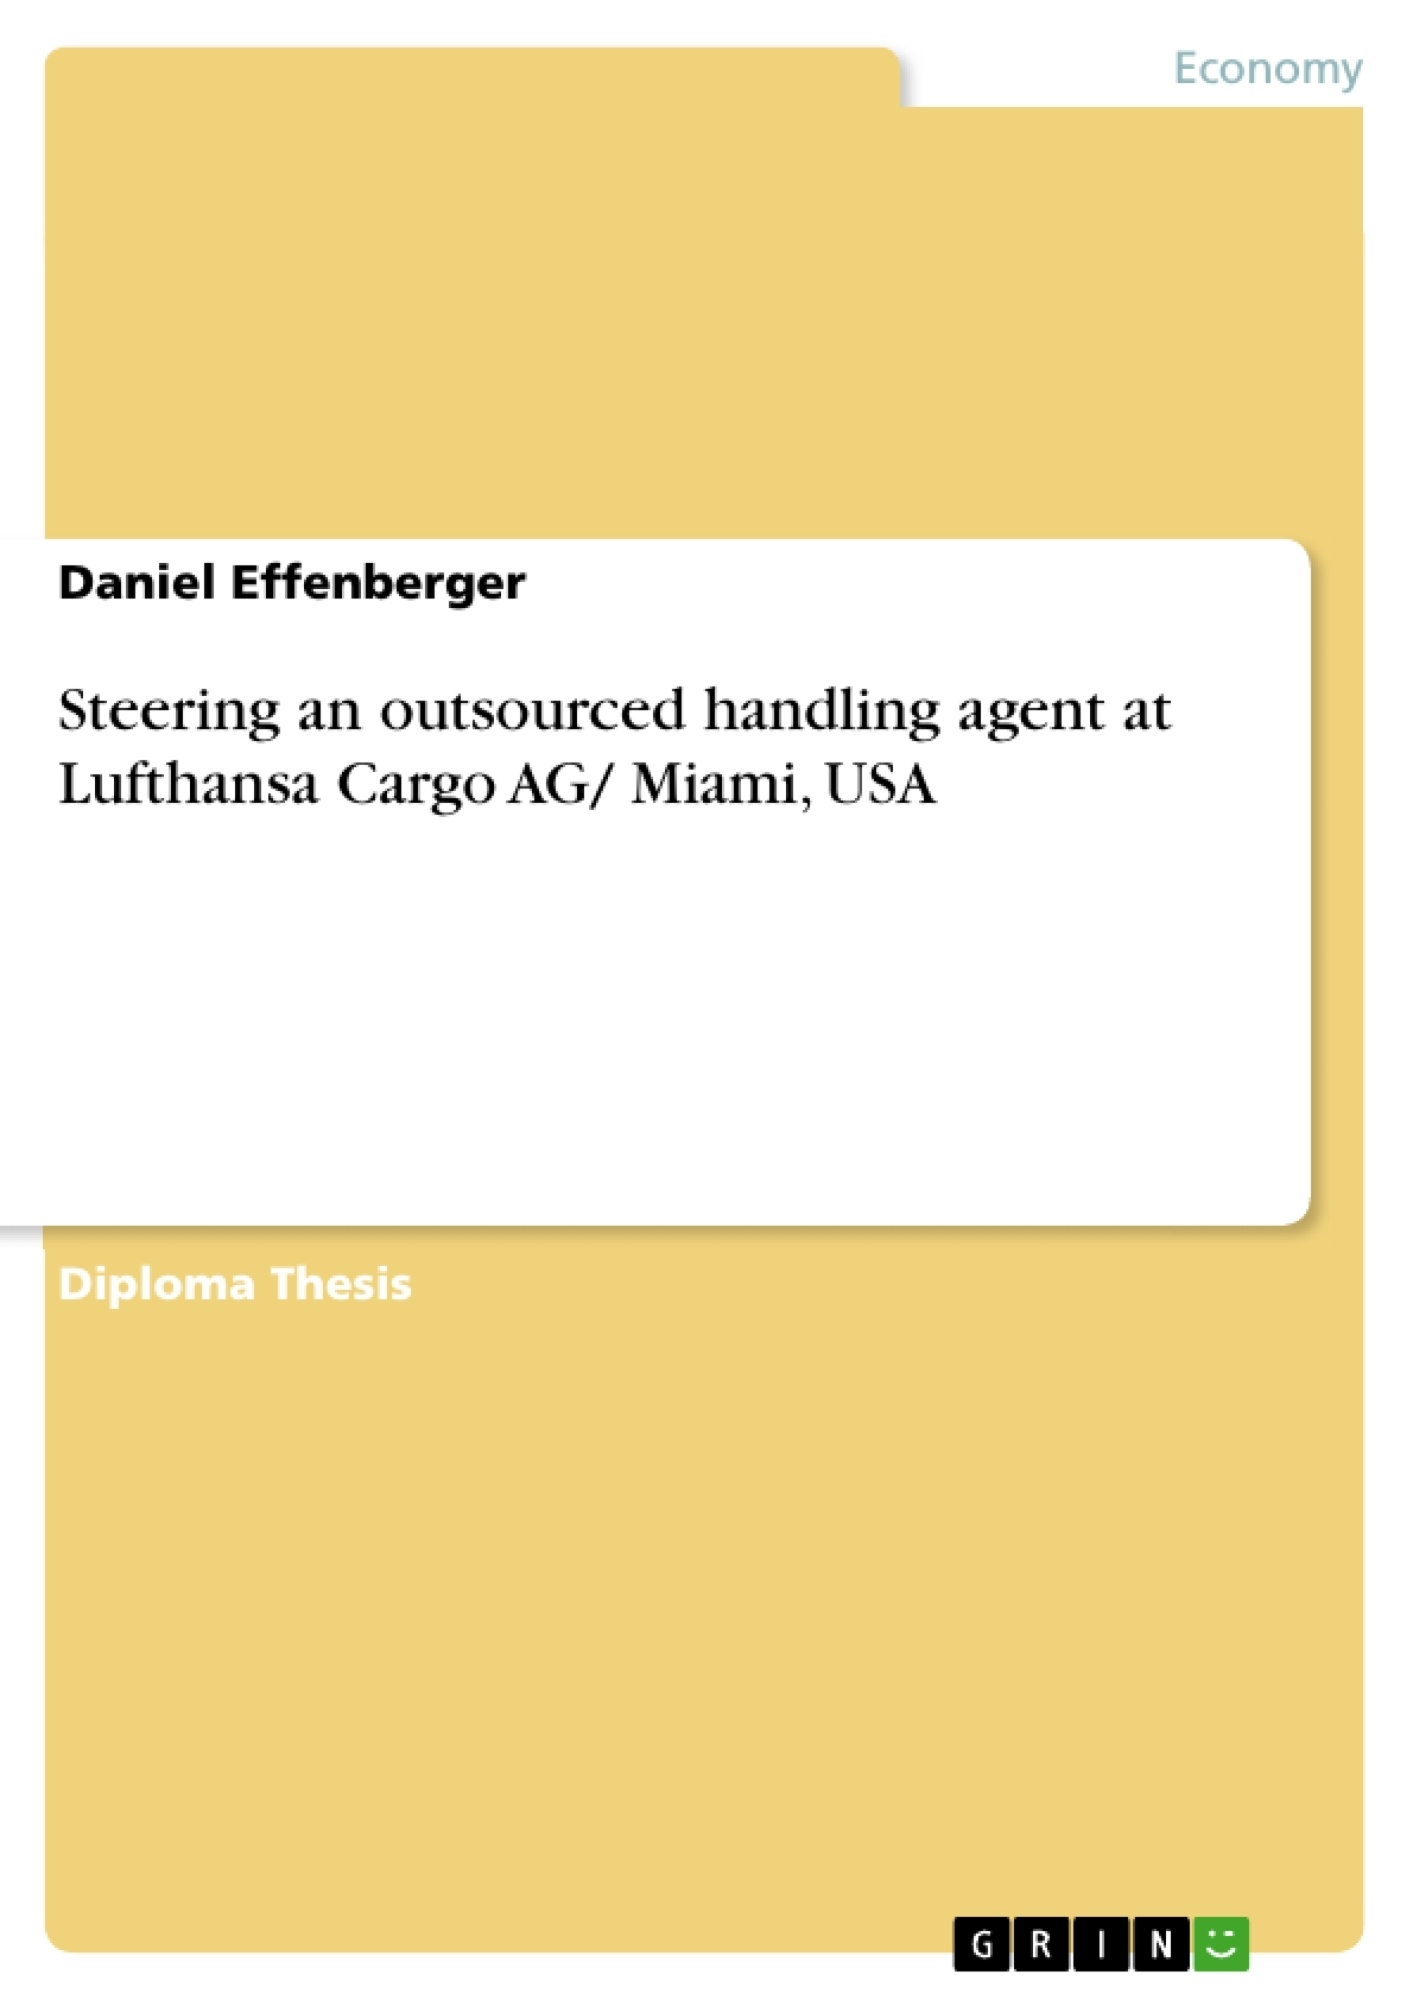 Title: Steering an outsourced handling agent at Lufthansa Cargo AG/ Miami, USA